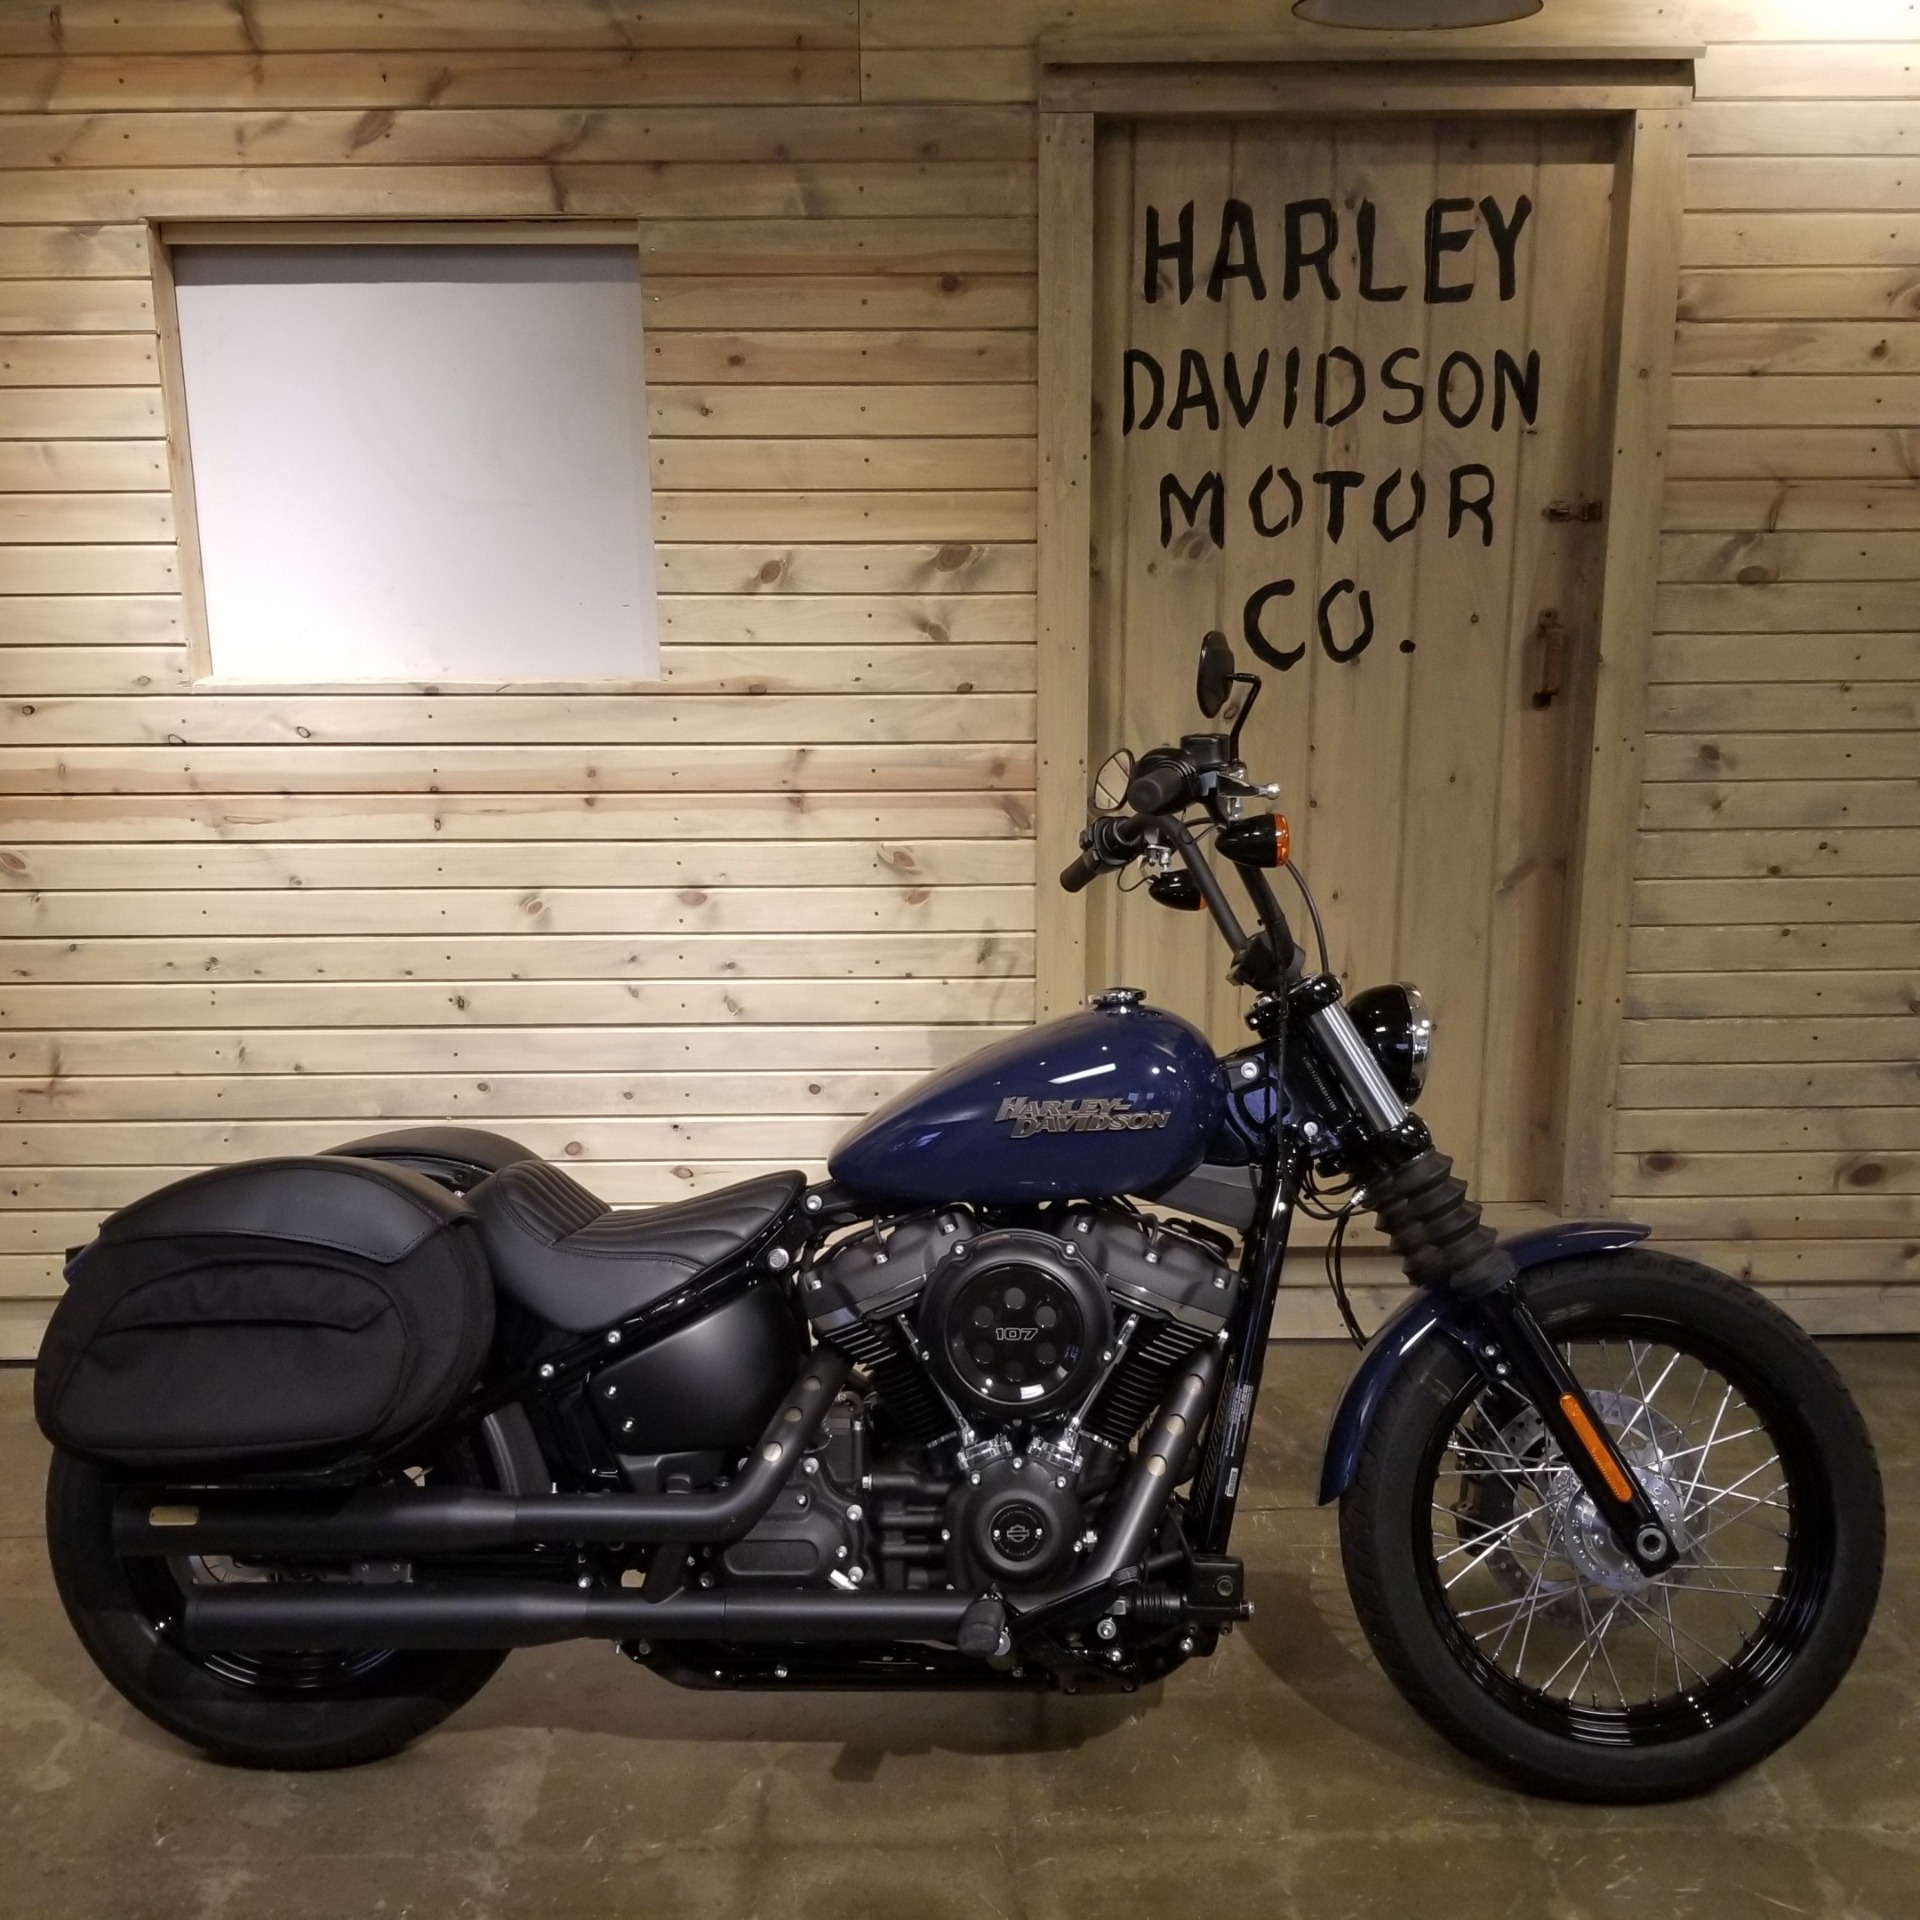 Used 2019 Harley Davidson Street Bob Motorcycles In Mentor Oh Stock Number Up B051440